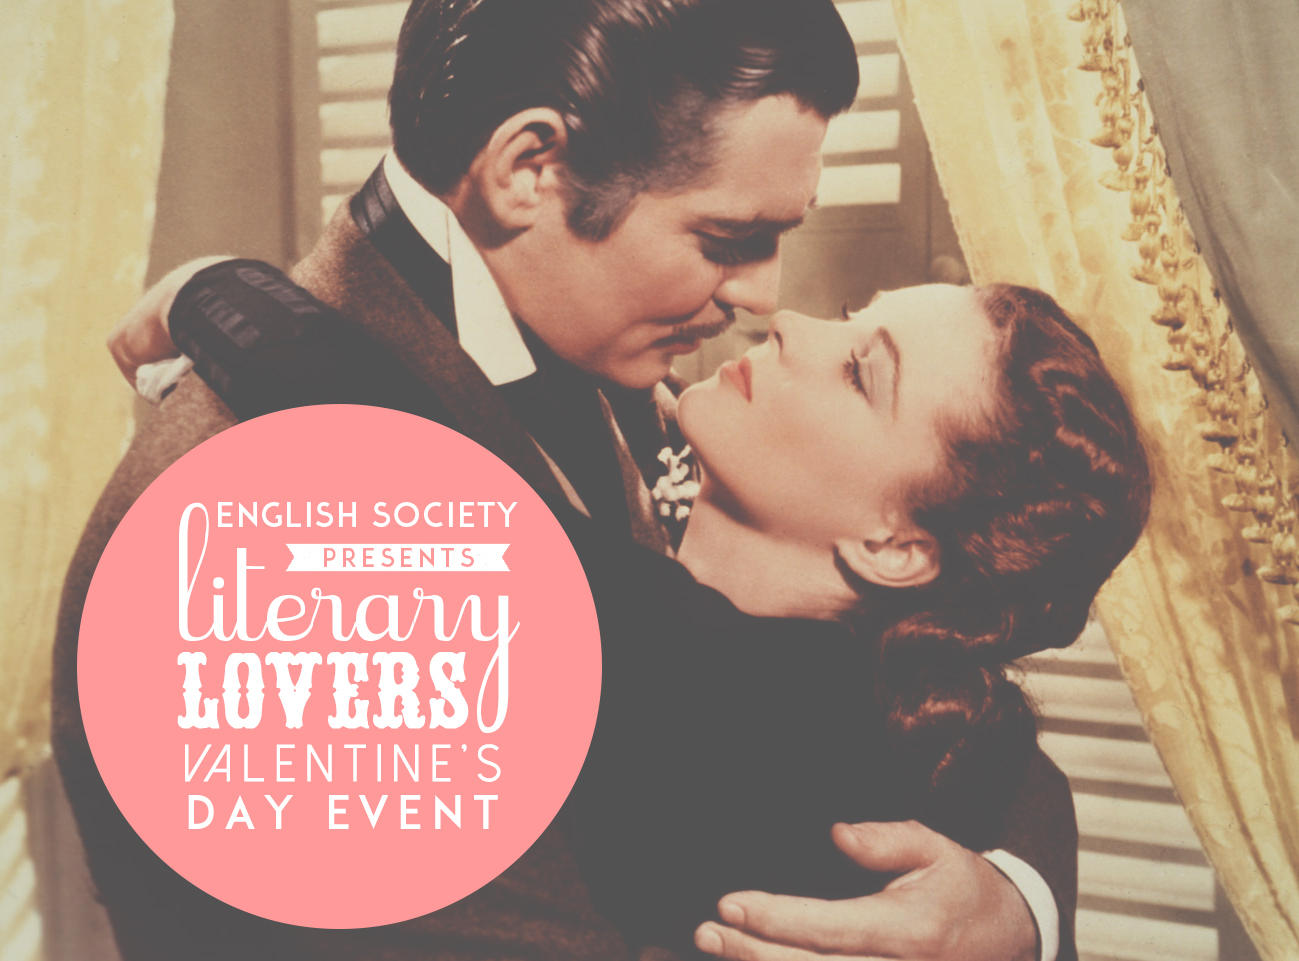 Literary Lovers Valentine's Event